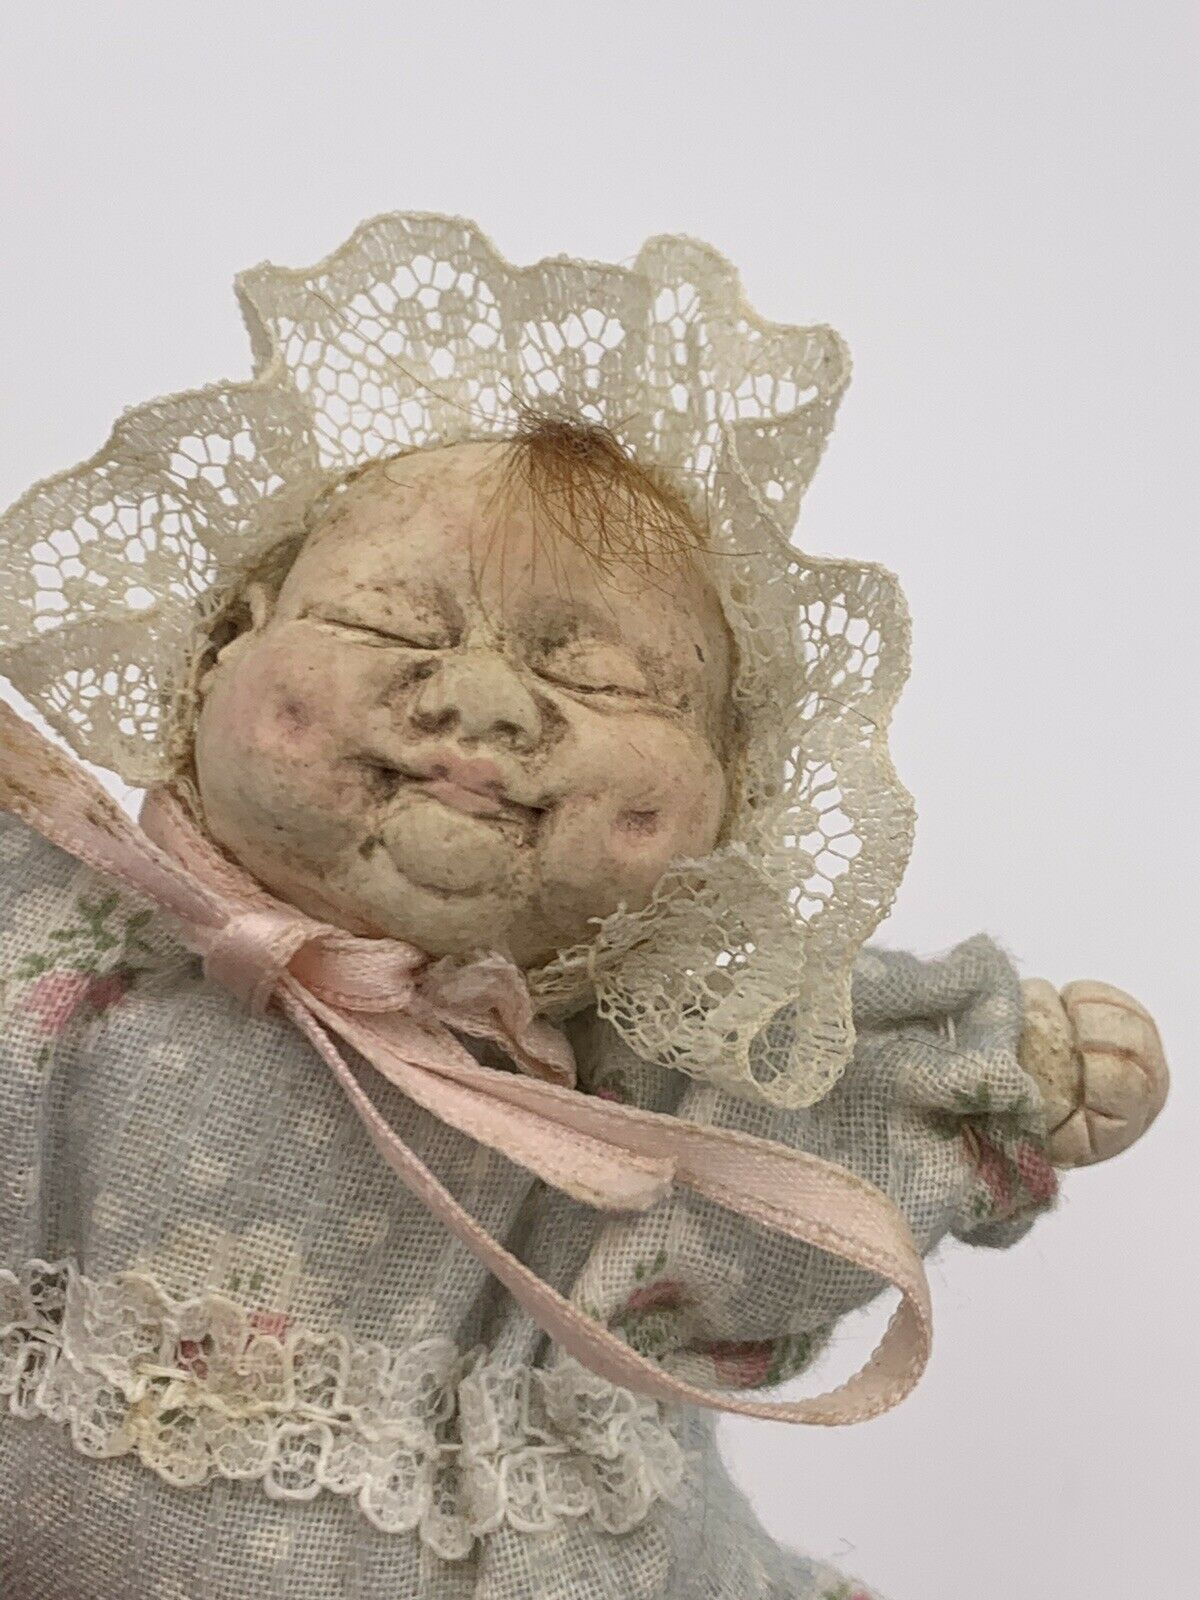 Antique Or Vintage Miniature Baby Doll In Woven Basket-   Extremely Ugly Baby